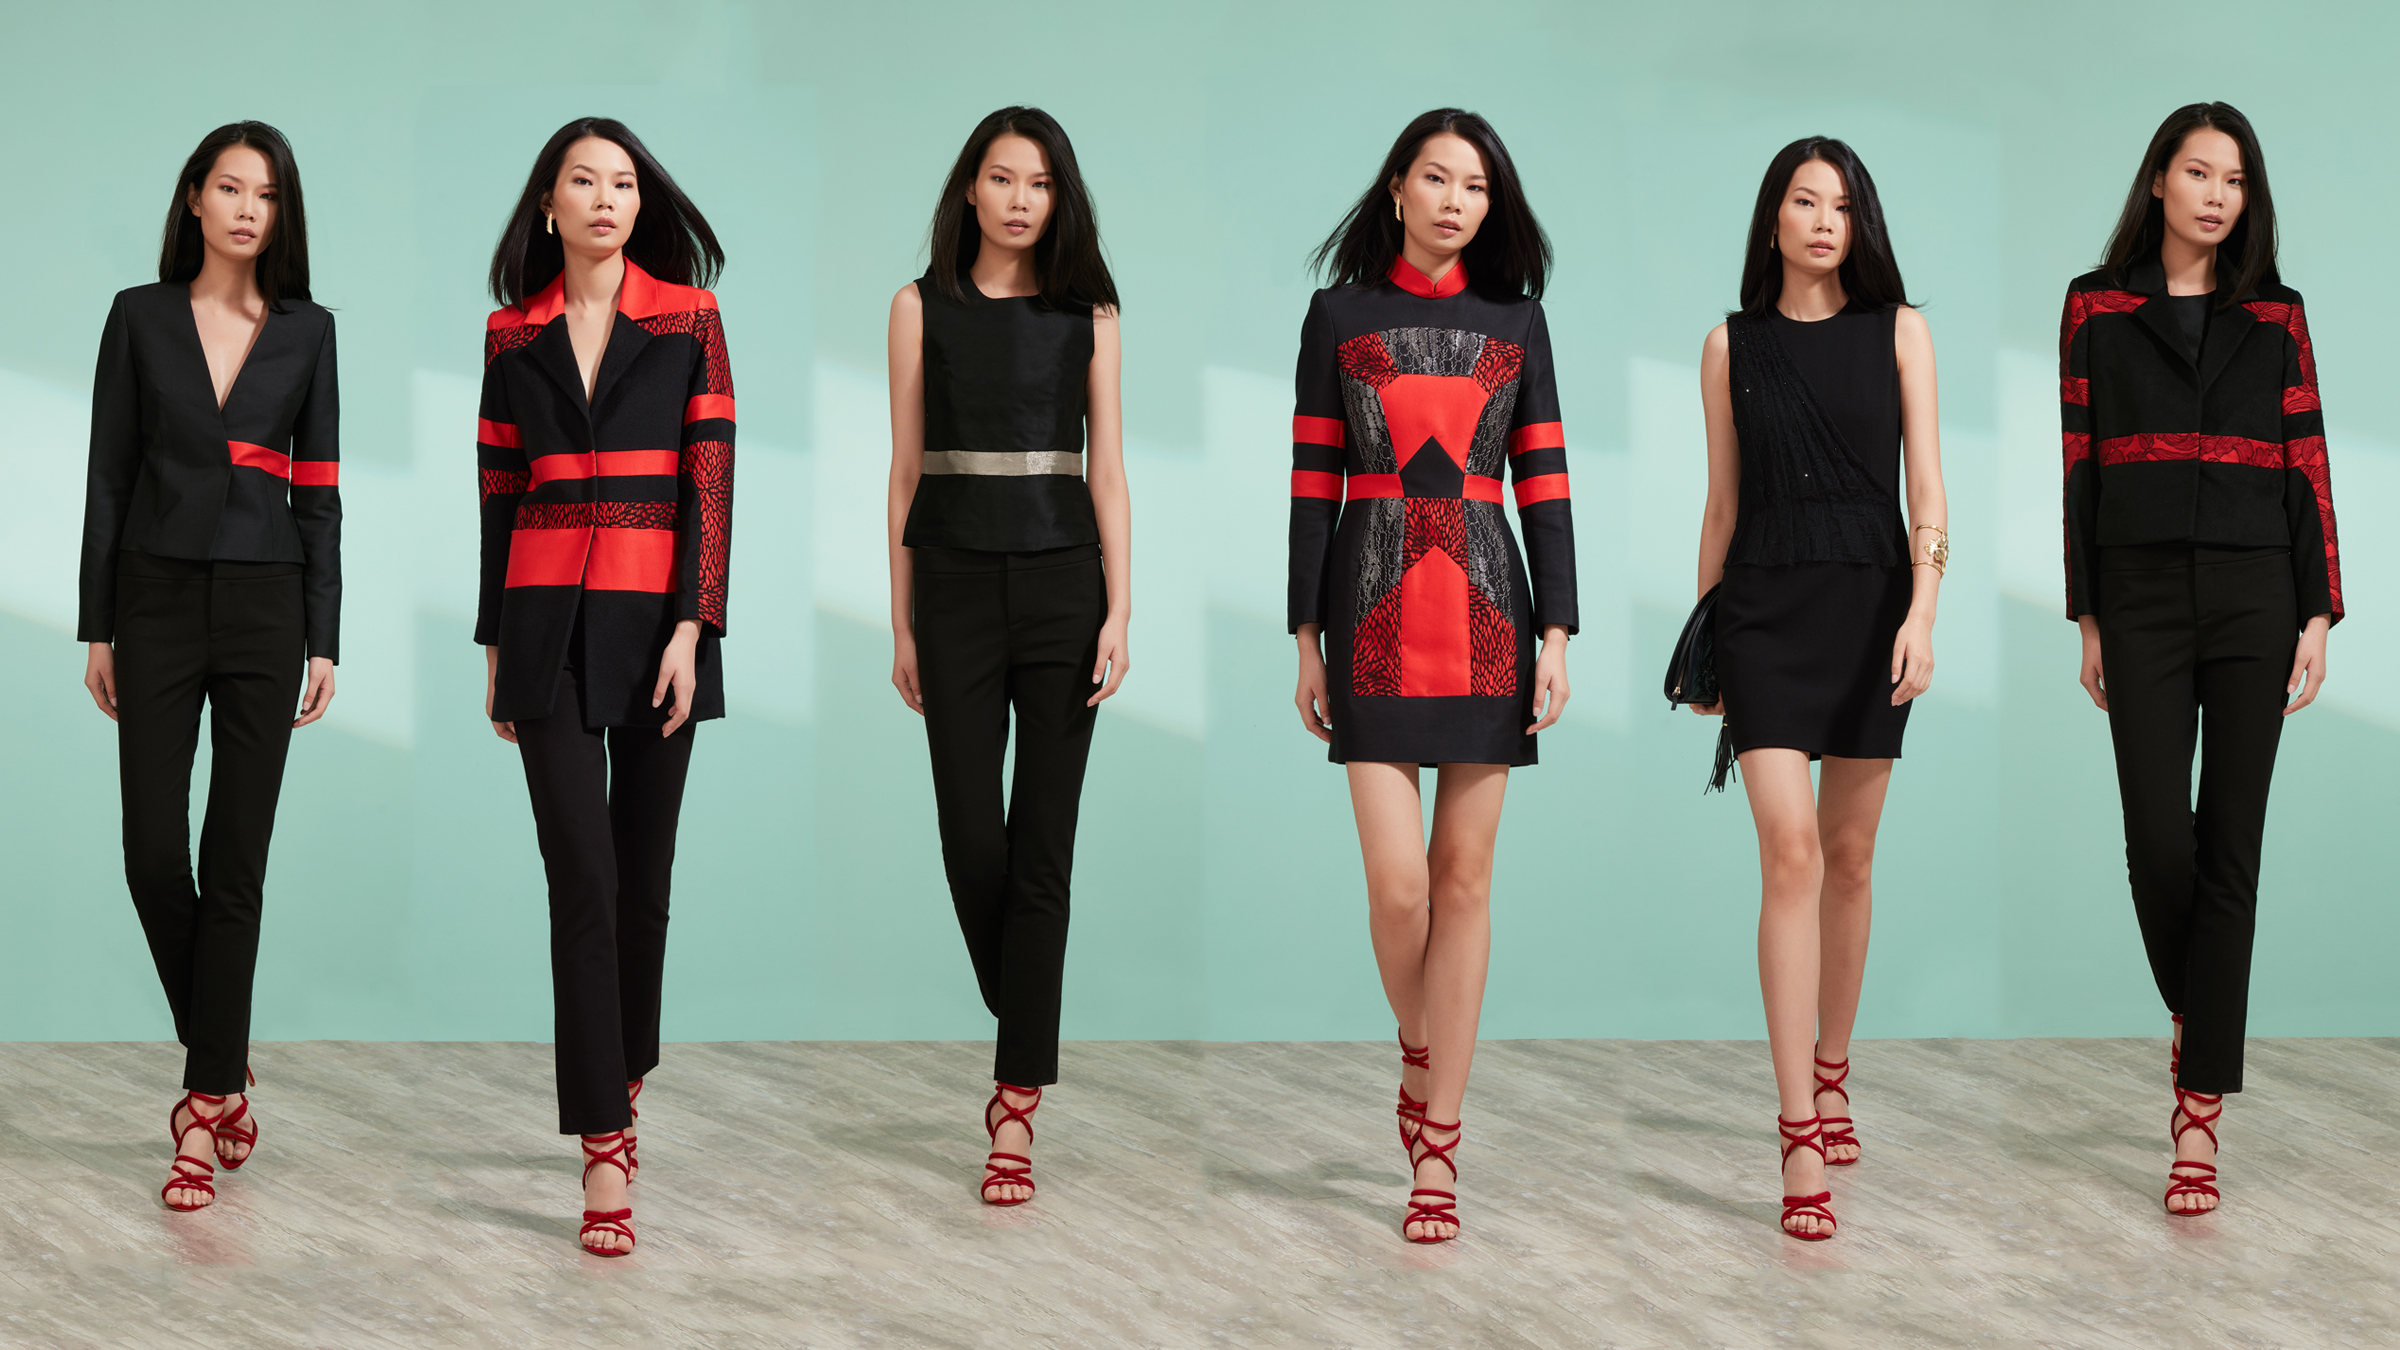 Shanghai Tang x EcoChic capsule collection